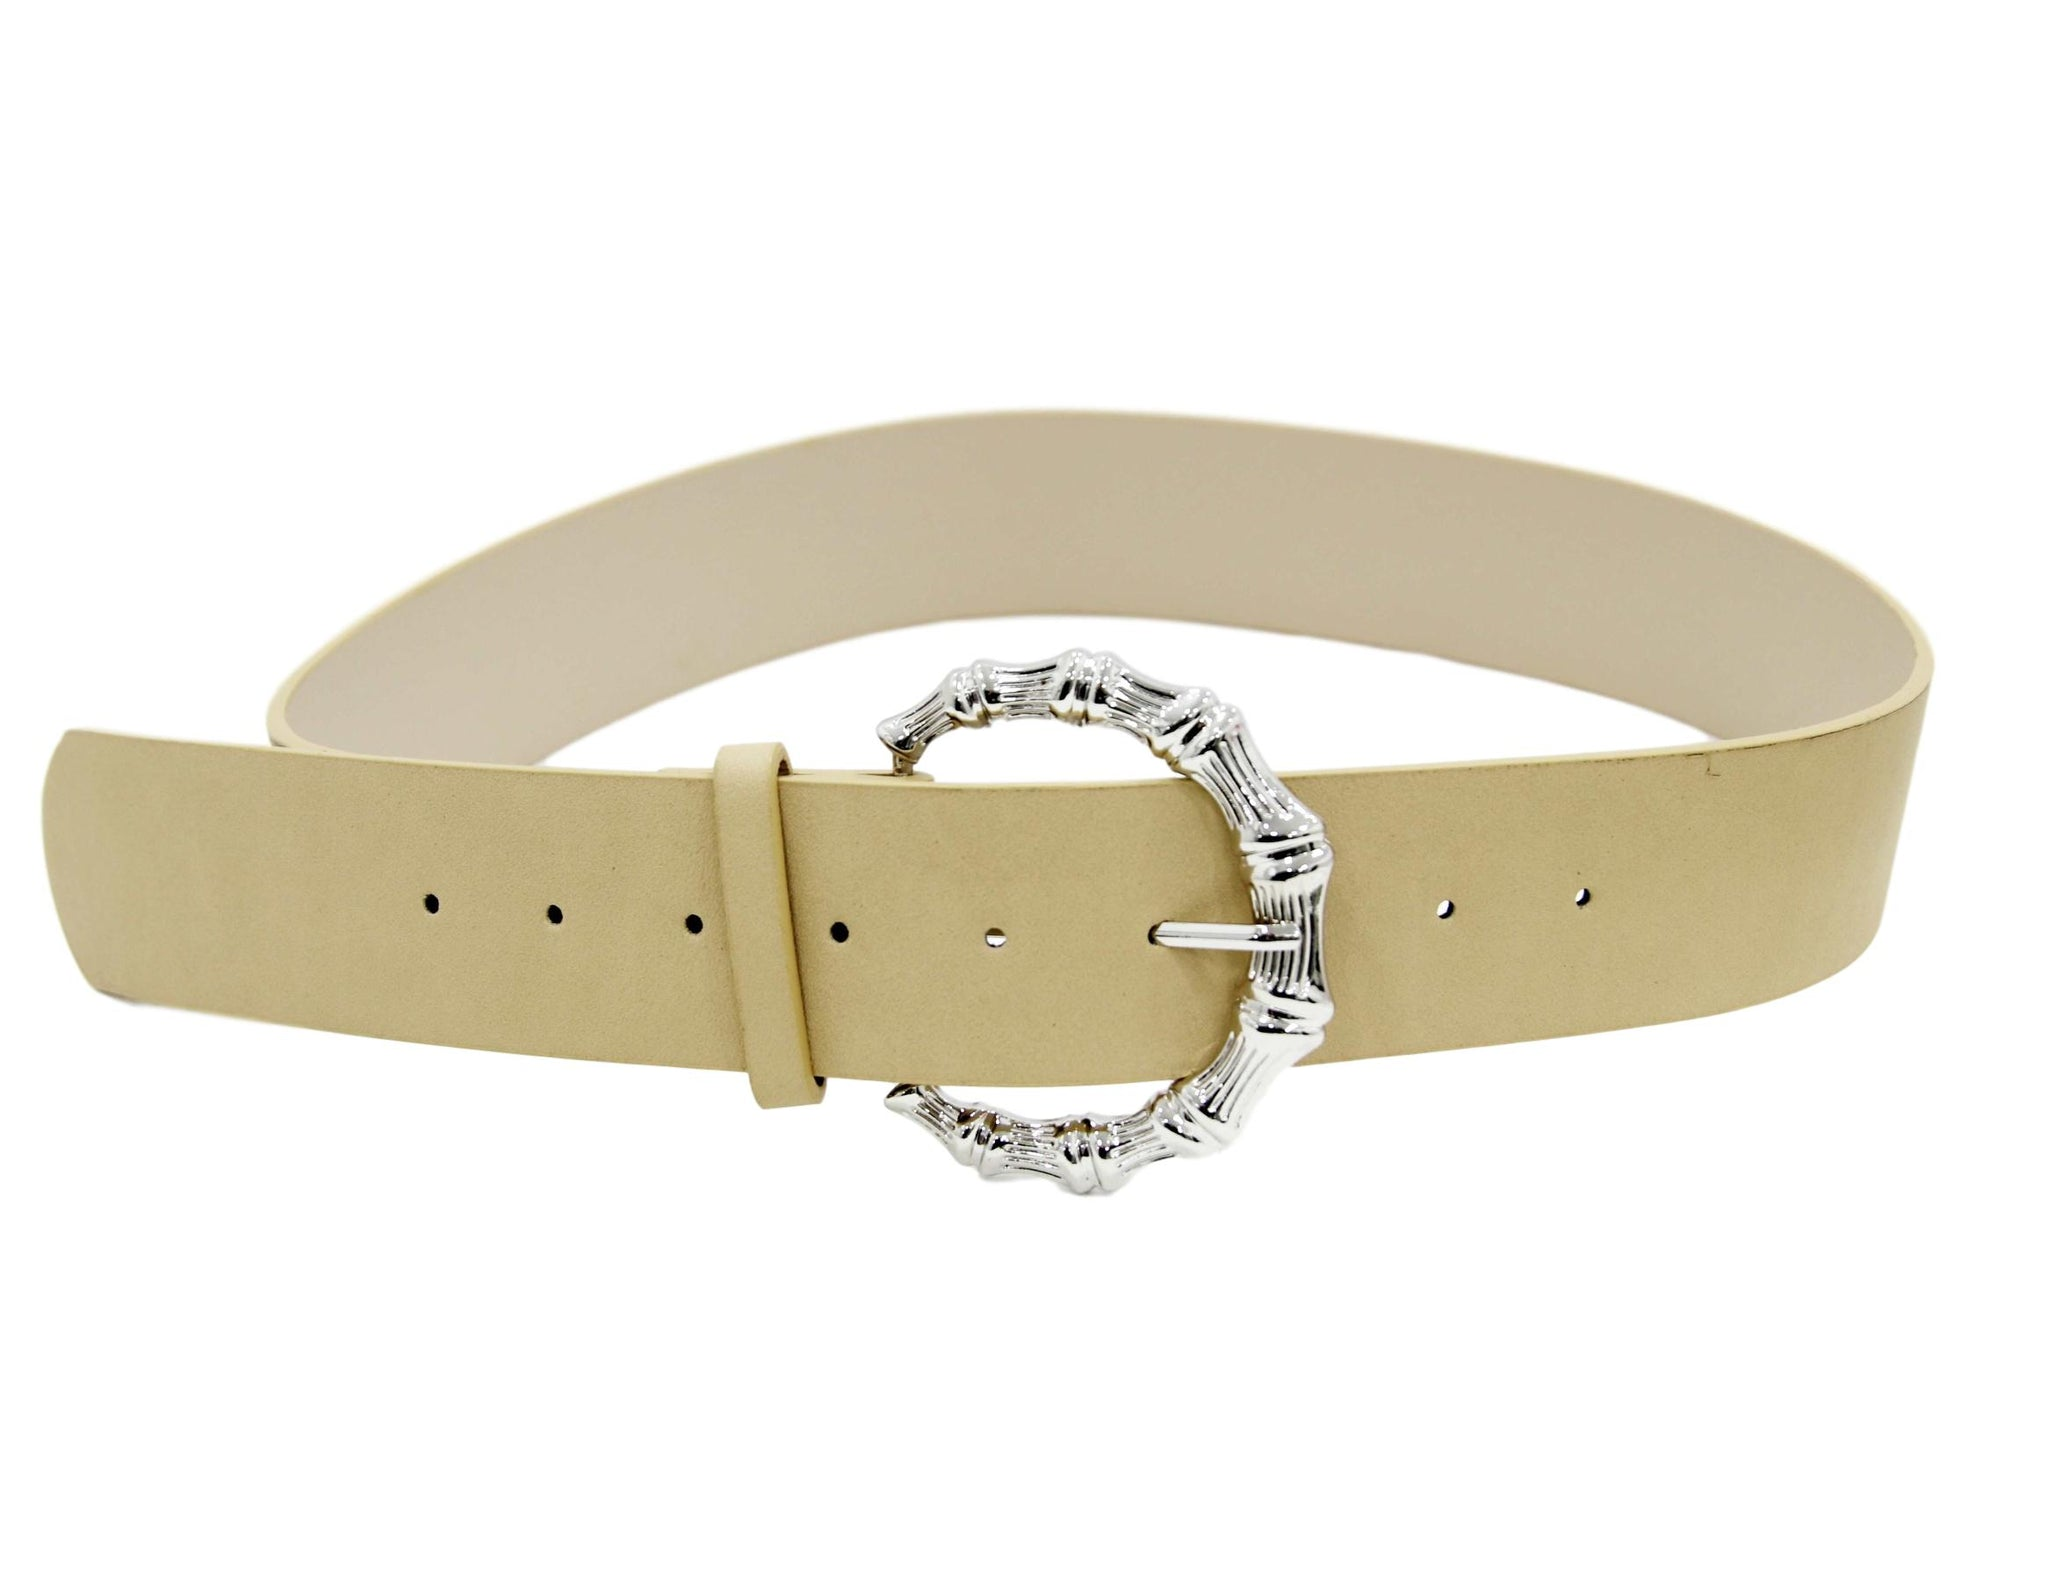 Pu belt with metal bamboo buckle